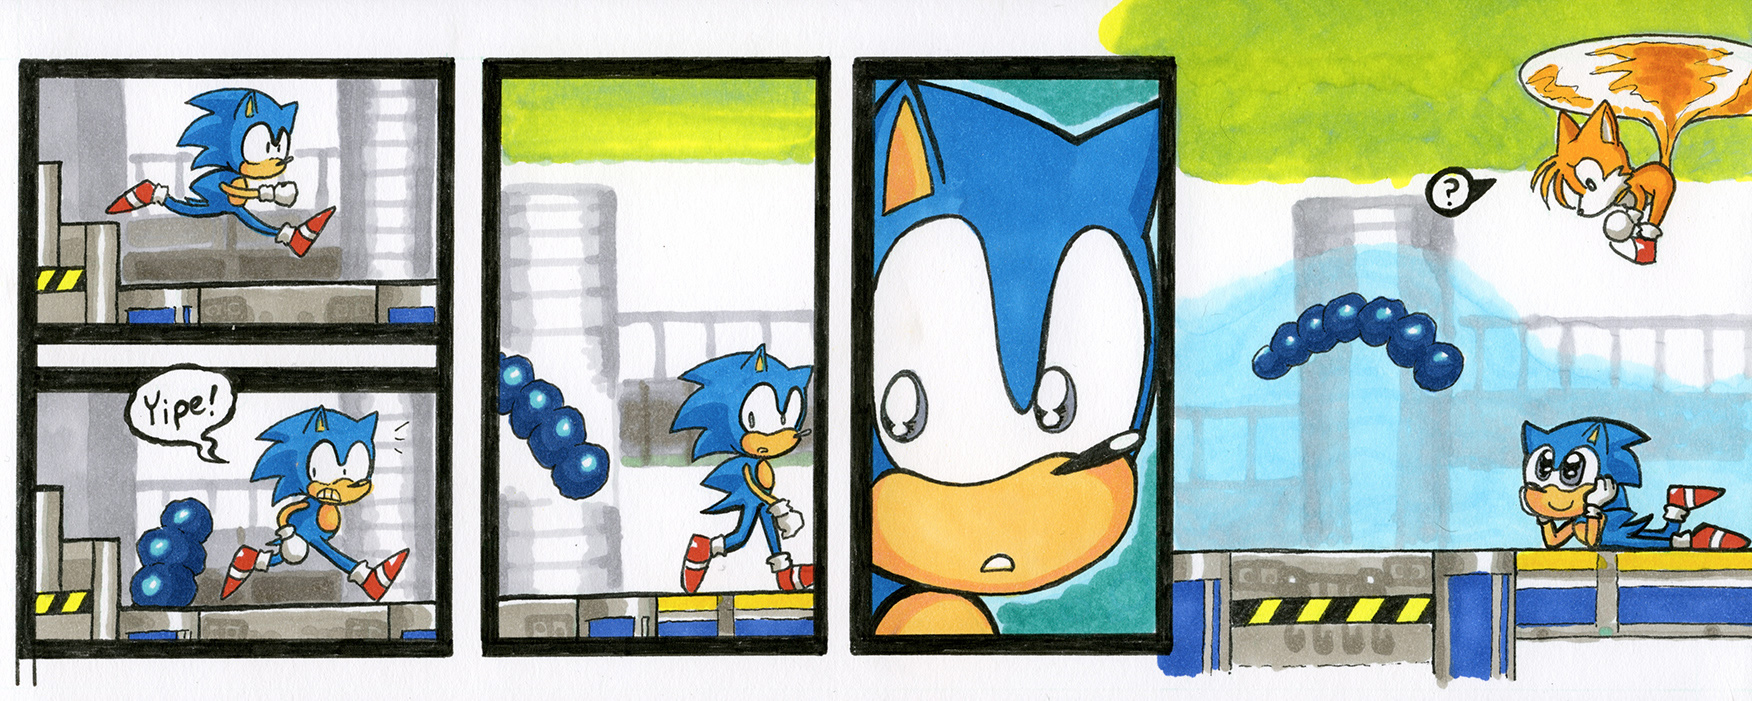 Sonic the Hedgehog 2: Chemical Plant Zone, Act 1